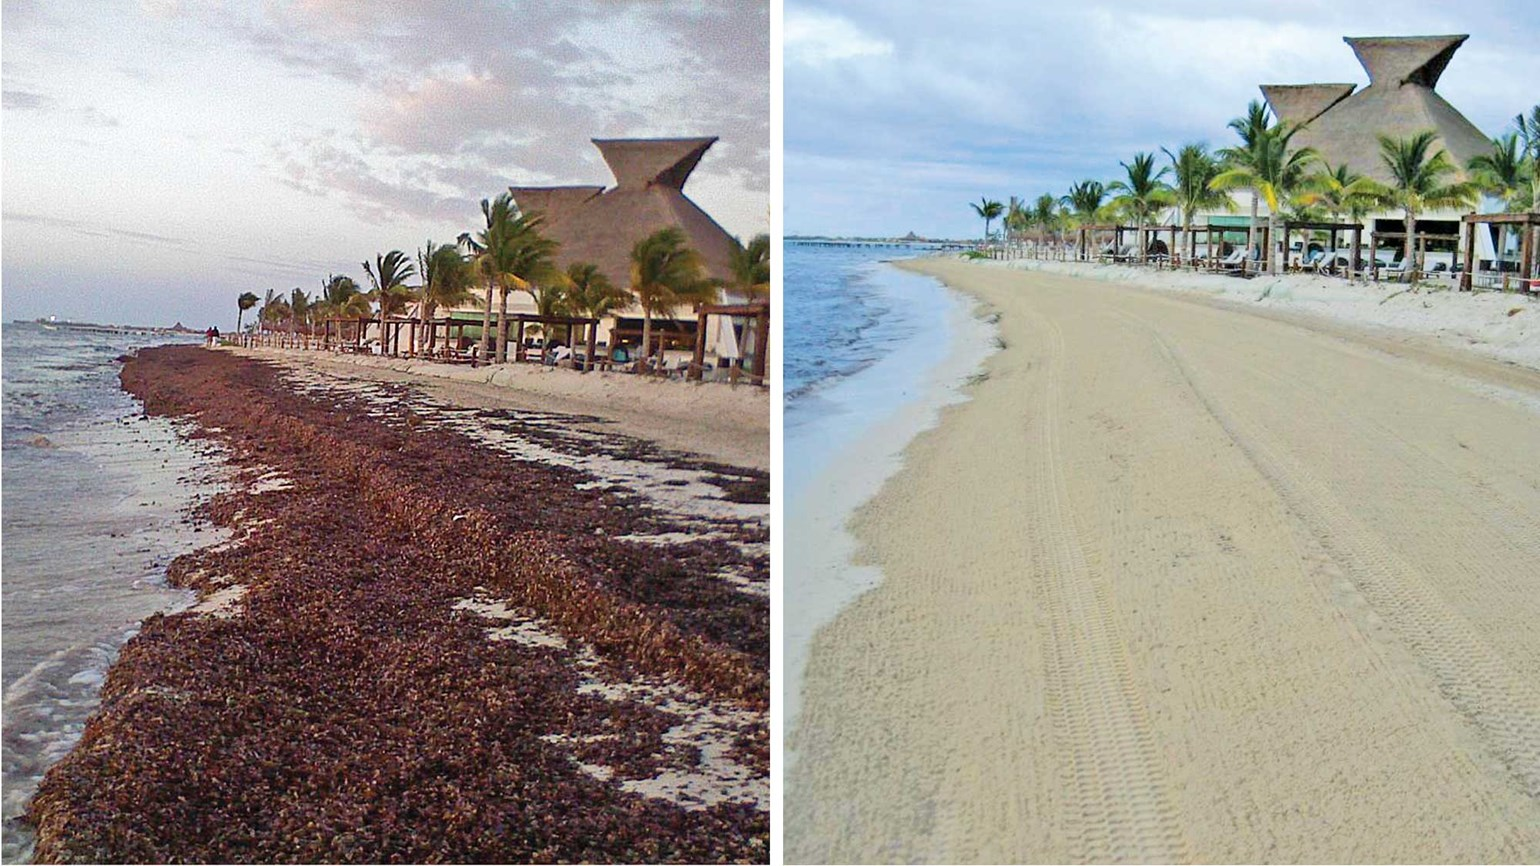 Caribbean, Mexico fighting sargassum with heavy-duty machines